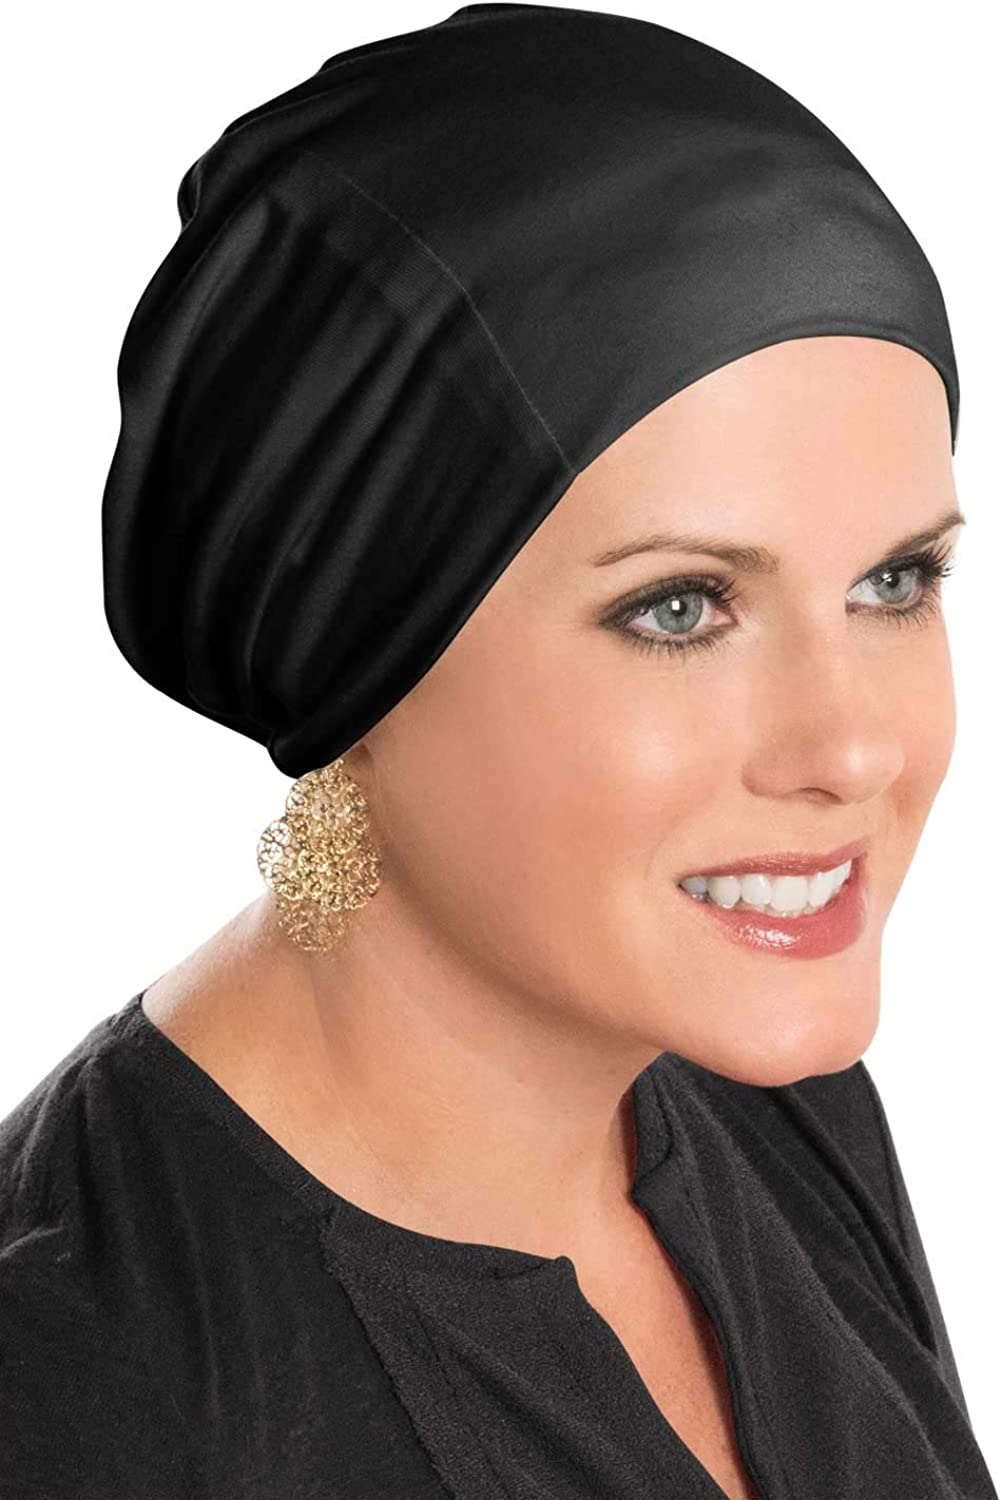 Cardani Cozy Cap Slouch Hat   Slouchy Cancer Beanie Hats